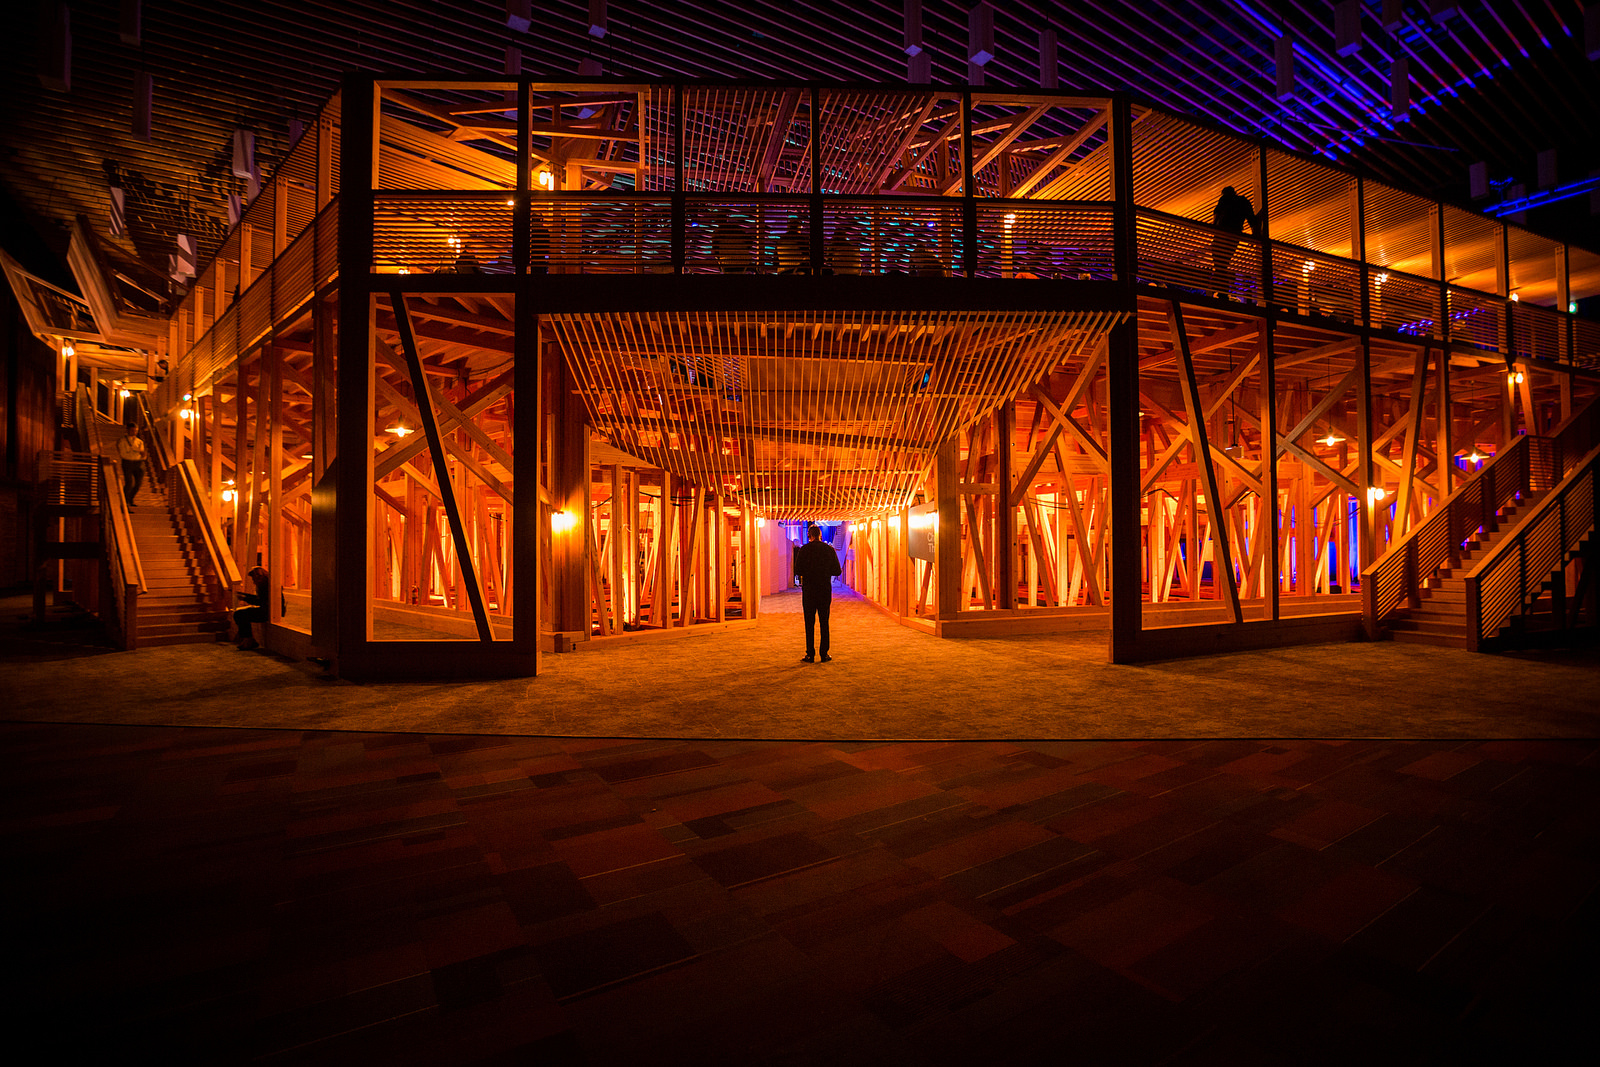 The underbelly of the TED2014 pop-up theater. Photo: Ryan Lash